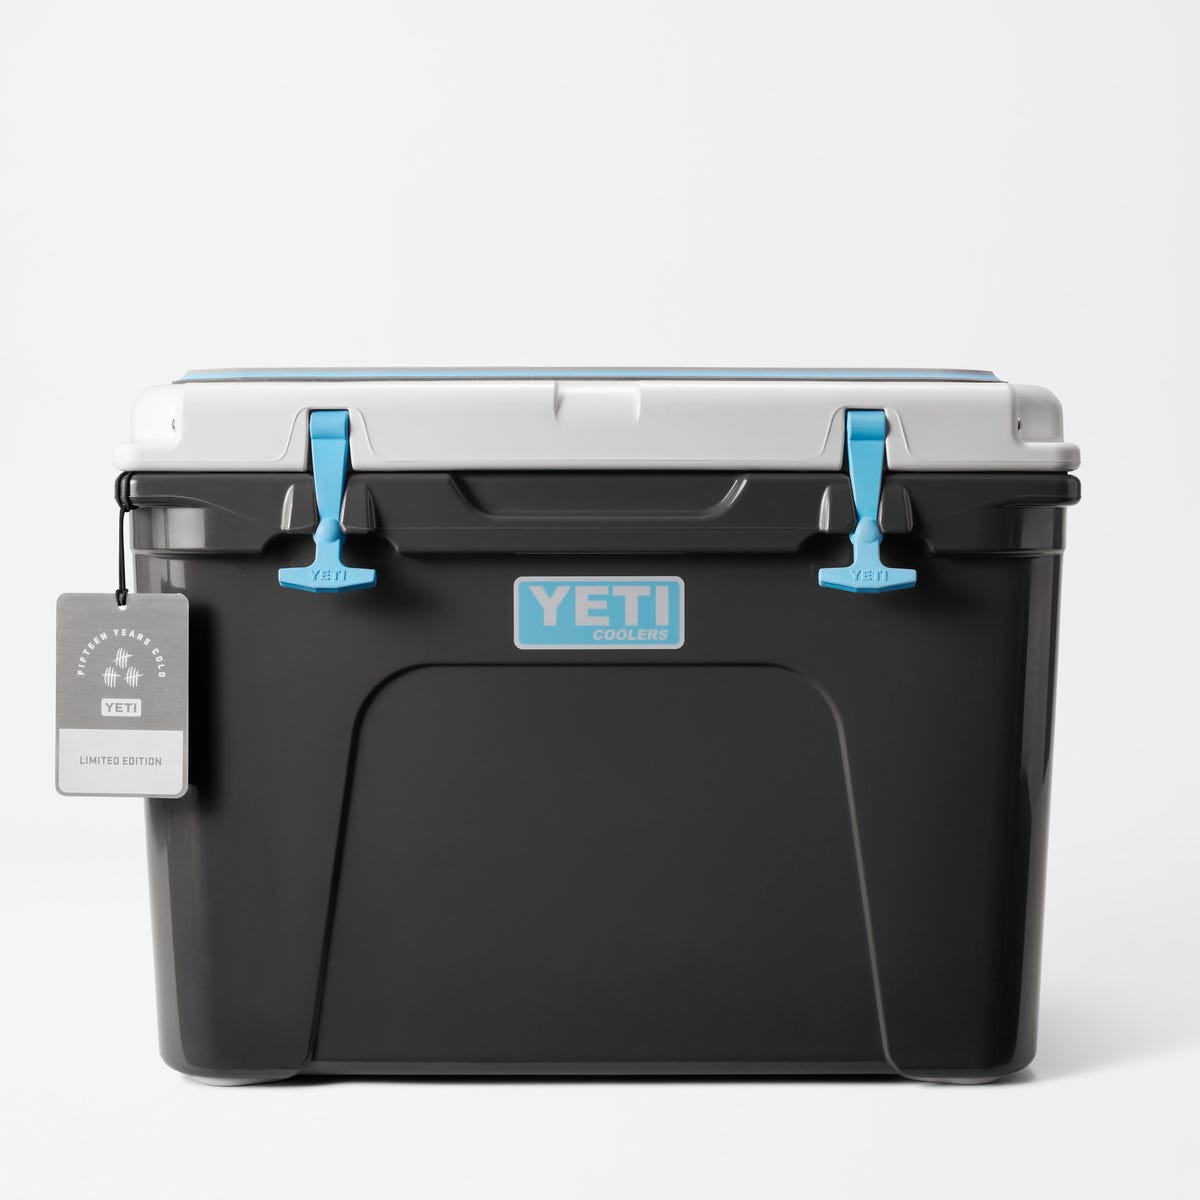 Access here alternative investment news about Yeti Celebrates 15 Years With Accelerating Product Demand And Profits Up 107%